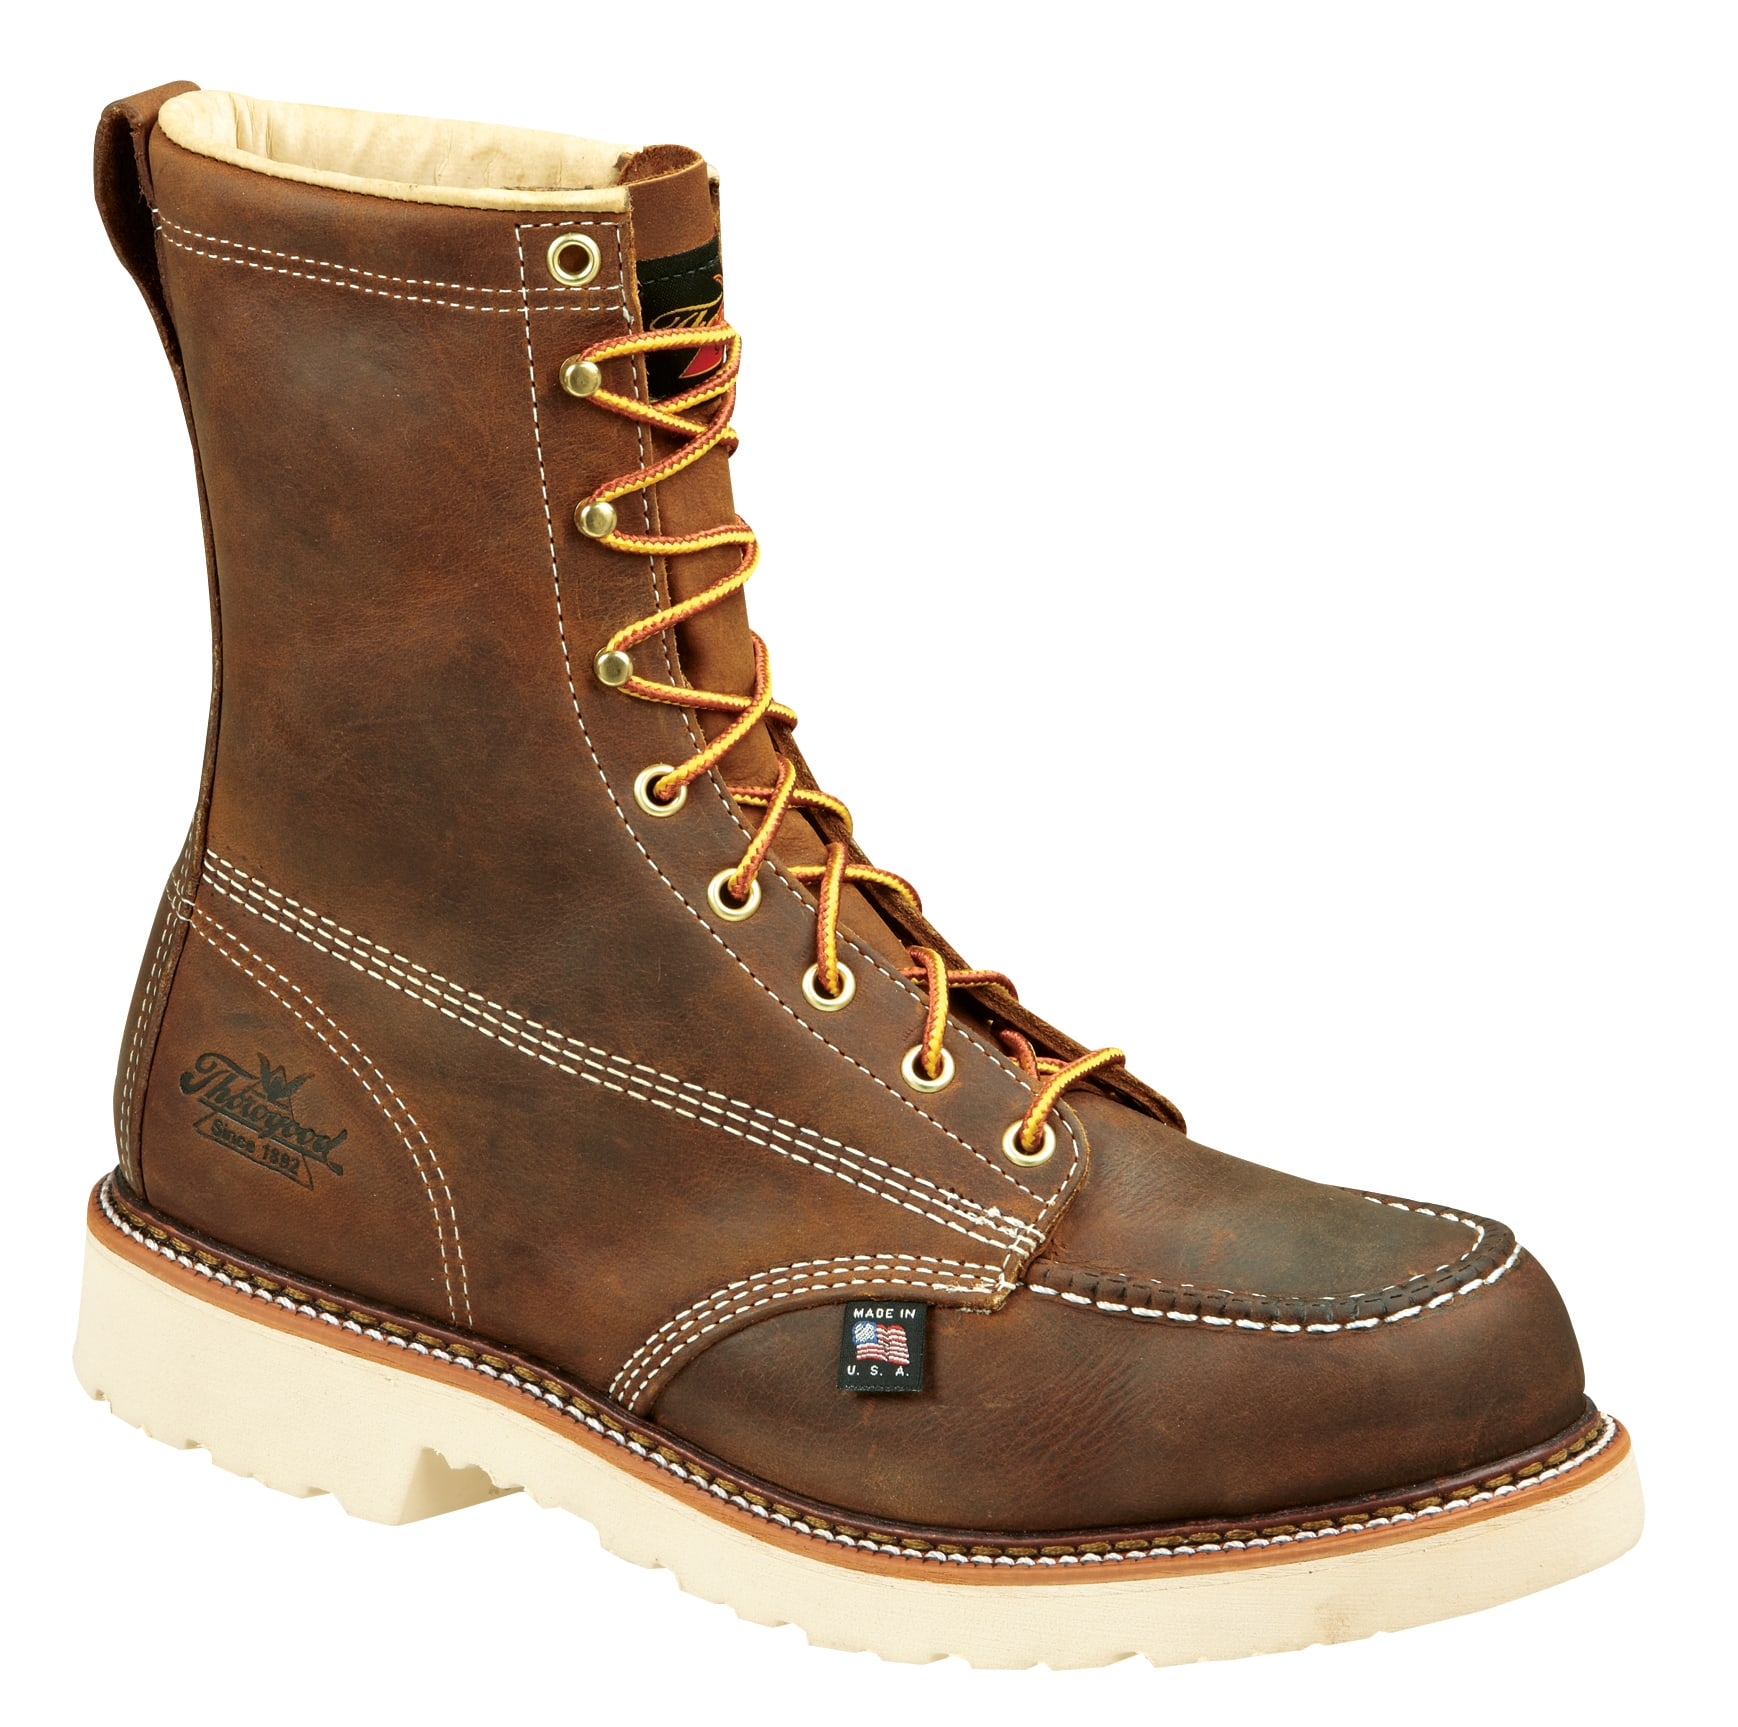 "Thorogood Men's American Heritage 8"" Moc Toe - Steel Toe thorogood,thorogood boots,thorogood american heritage,thorogood made in the usa,boots made in usa,thorogood moc toe work boots,thorogood mens boots,thorogood mens,thorogood 8"" work boots,thorogood oil-resistant boots,thorogood slip-resistant boots,thorogood steel toe,thorogood steel toe boots,thorogood steel toe work boots,thorogood safety toe steel toe,thorogood safety toe boots,thorogood safety toe work boots,men's work boots,men's steel toe slip resistant boots,men's steel toe oil resistant boots,usa made boots,cheap thorogood boots,cheap work boots,cheap thorogood work boots,brown lace up work boots,brown steel toe boots,durable work boots,804-4378,804-4378 boots,804-4378 work boots,804-4378 thorogood,ppe boots"